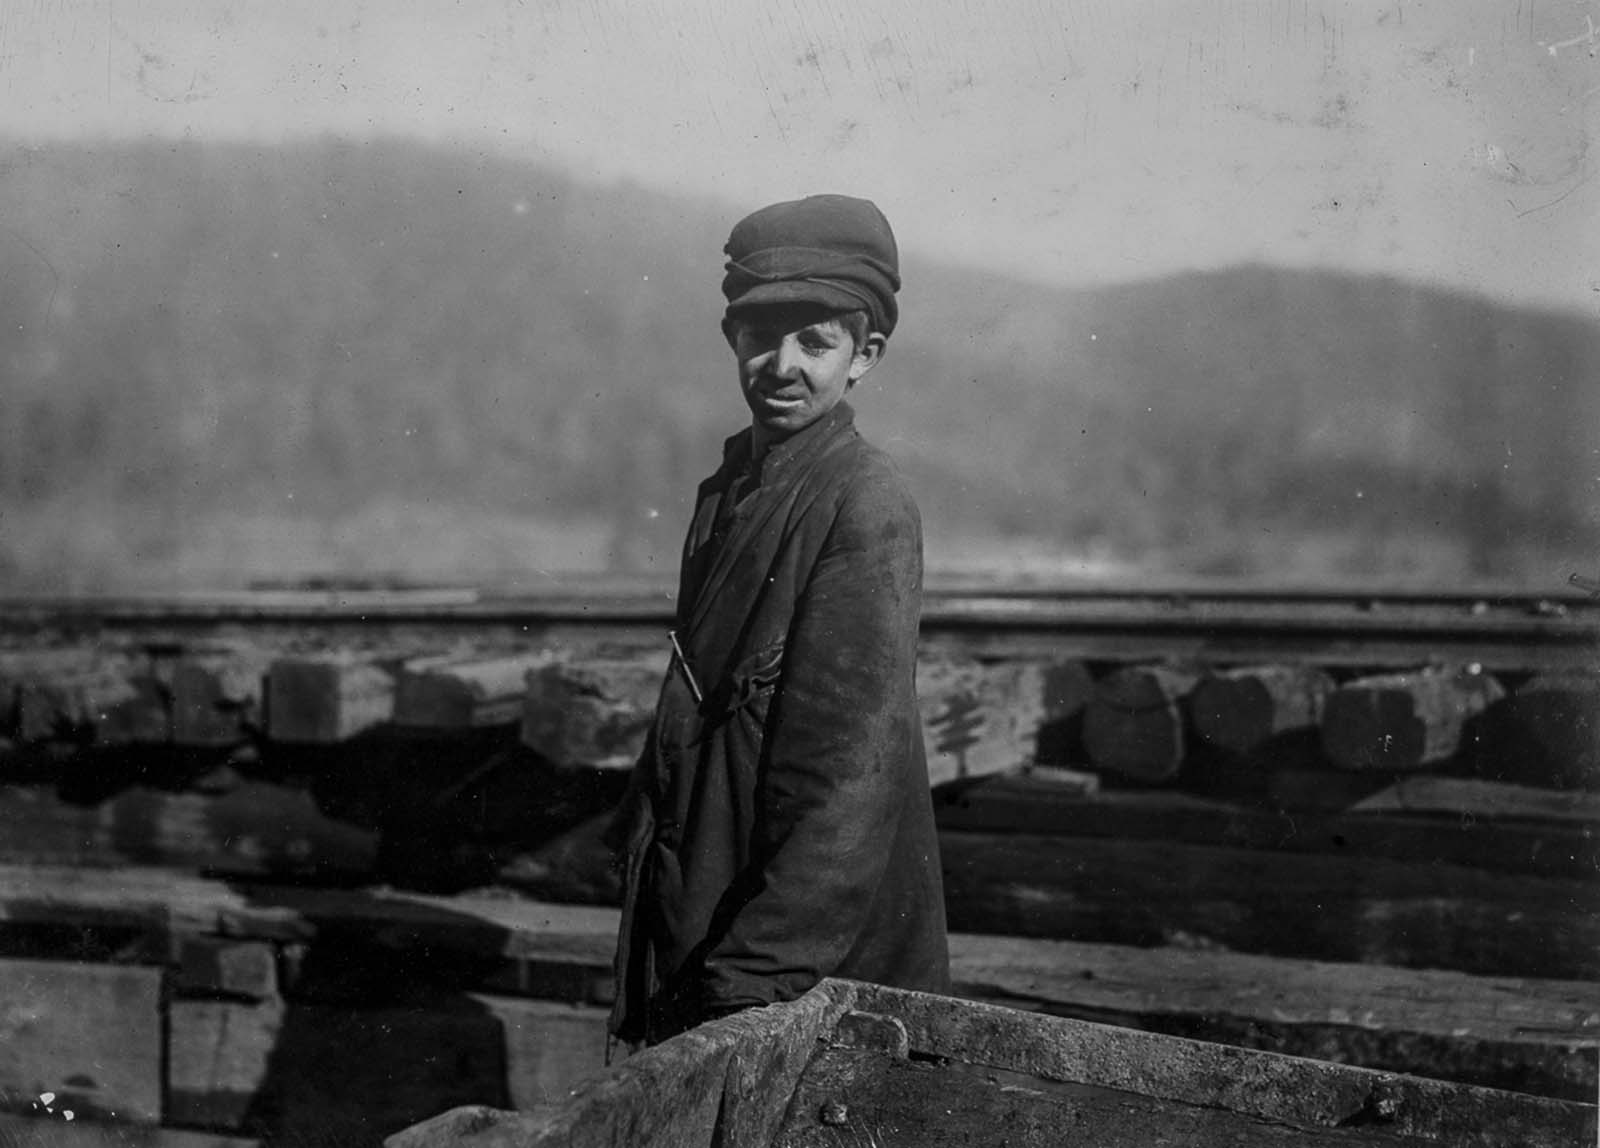 Harley Bruce, a worker at Indian Mountain Mine in Tennessee. 1910.